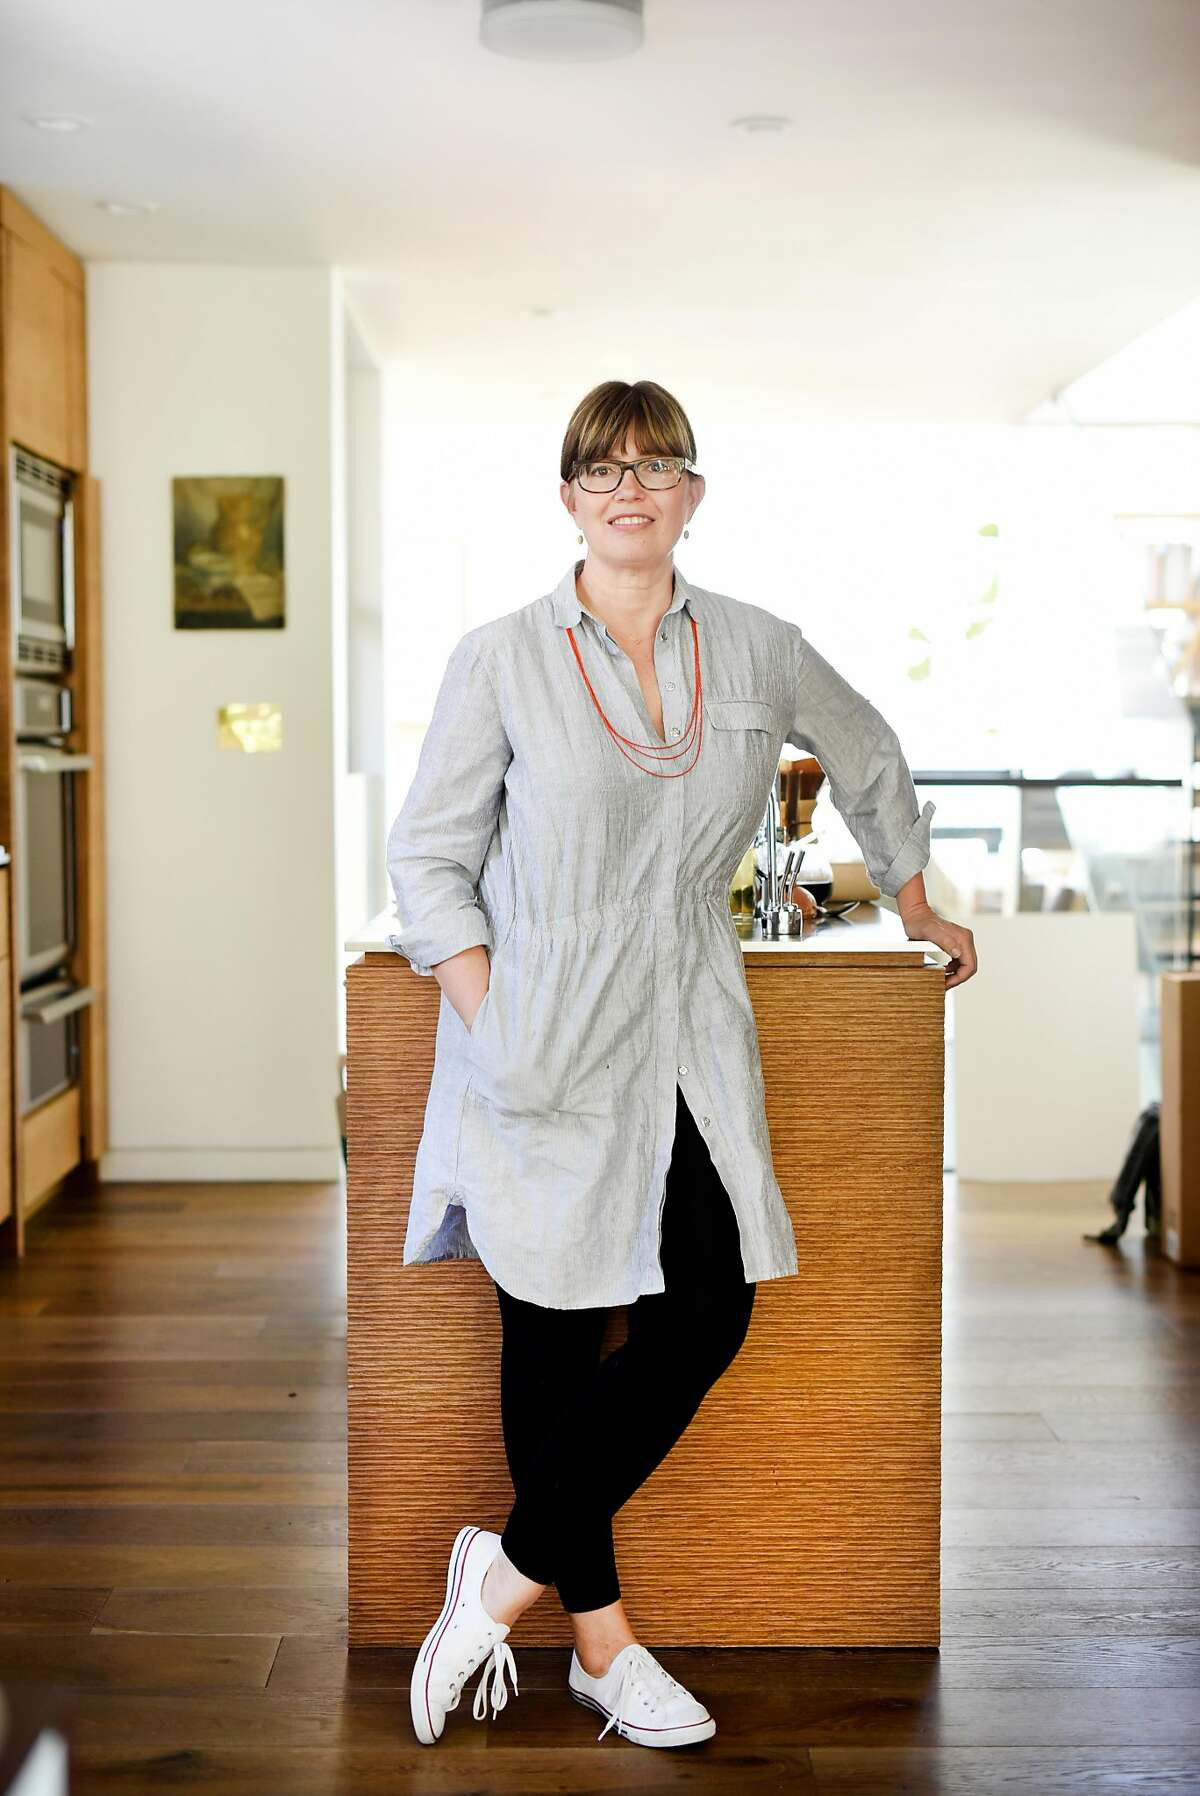 Chef and co-owner of Tartine Bakery Elisabeth Prueitt poses for a portrait while working on a cookbook at her home in San Francisco, CA Friday, July 29, 2016.